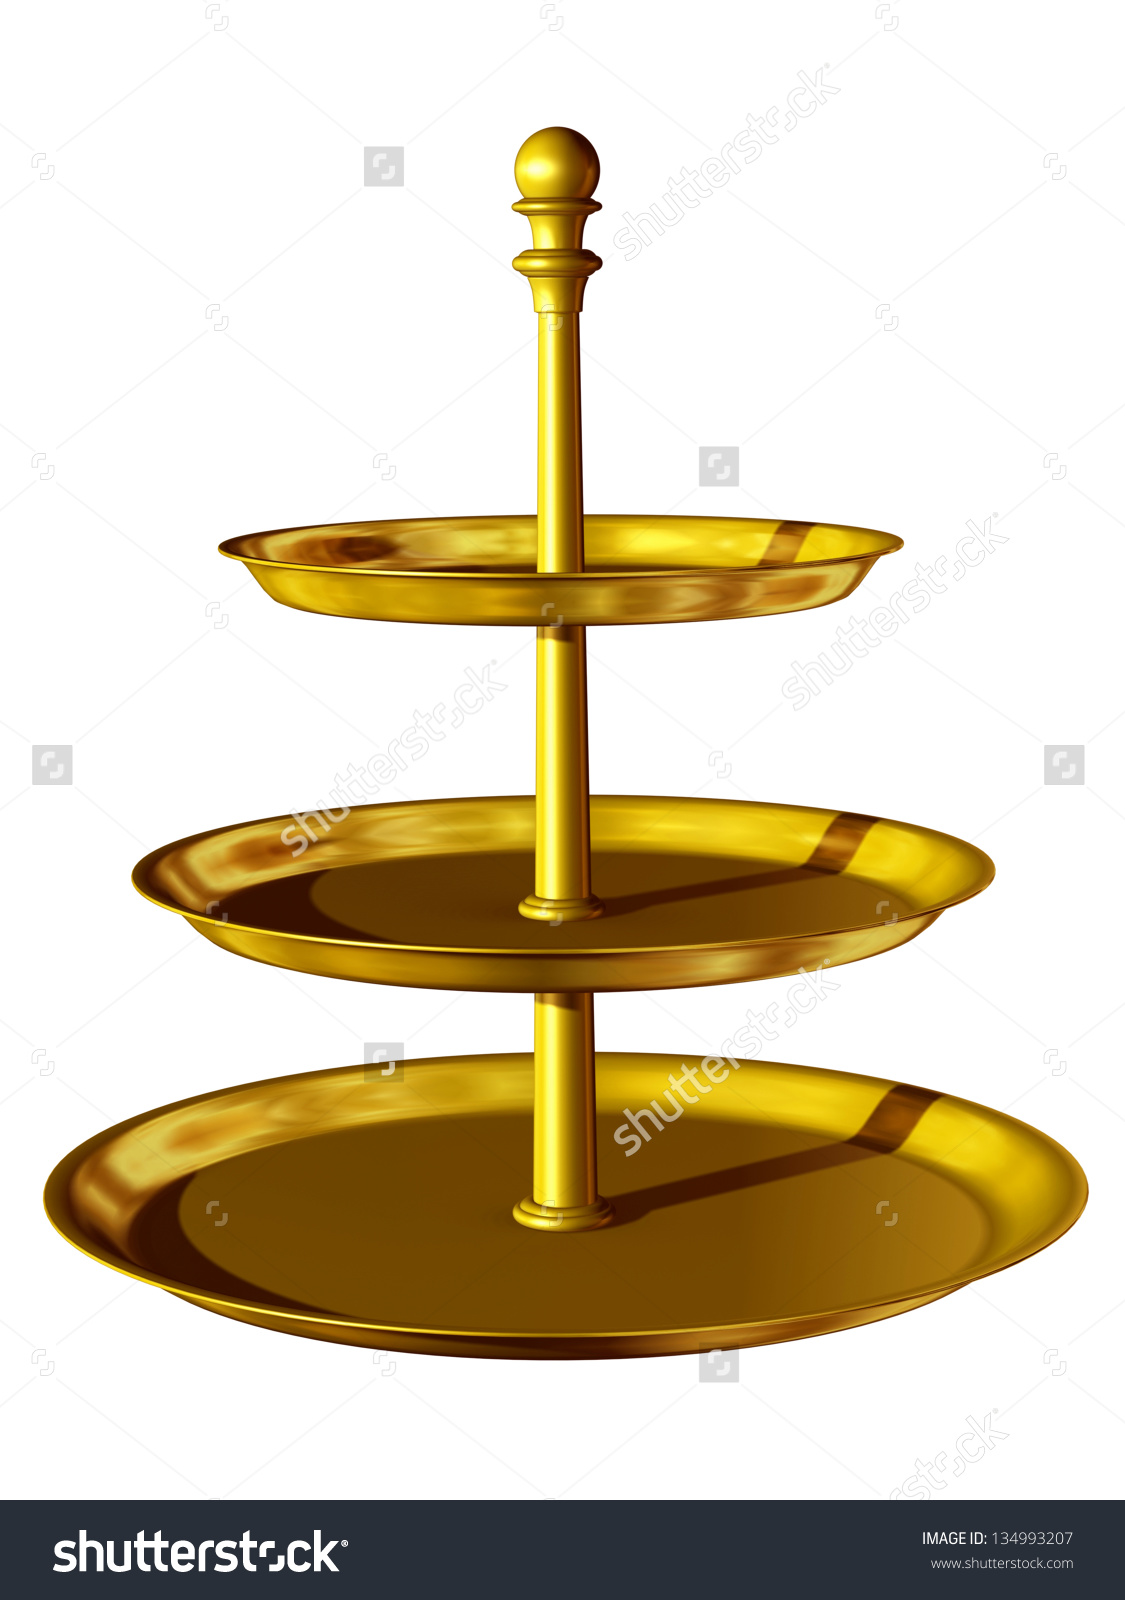 Golden Etagere With 3 Levels Stock Photo 134993207 : Shutterstock.